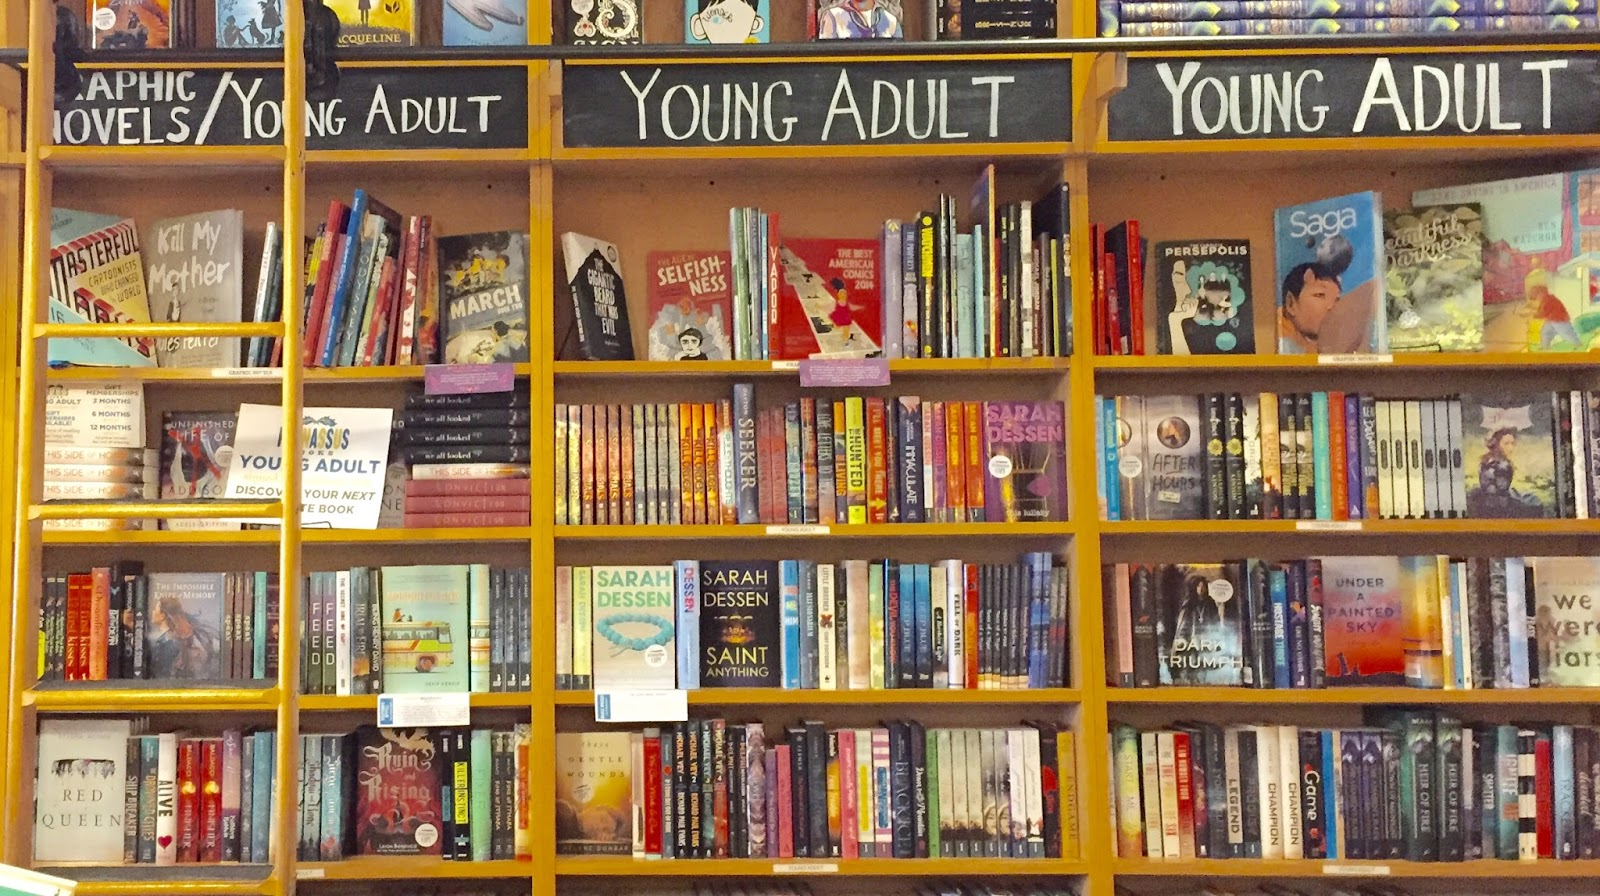 about young adult literature